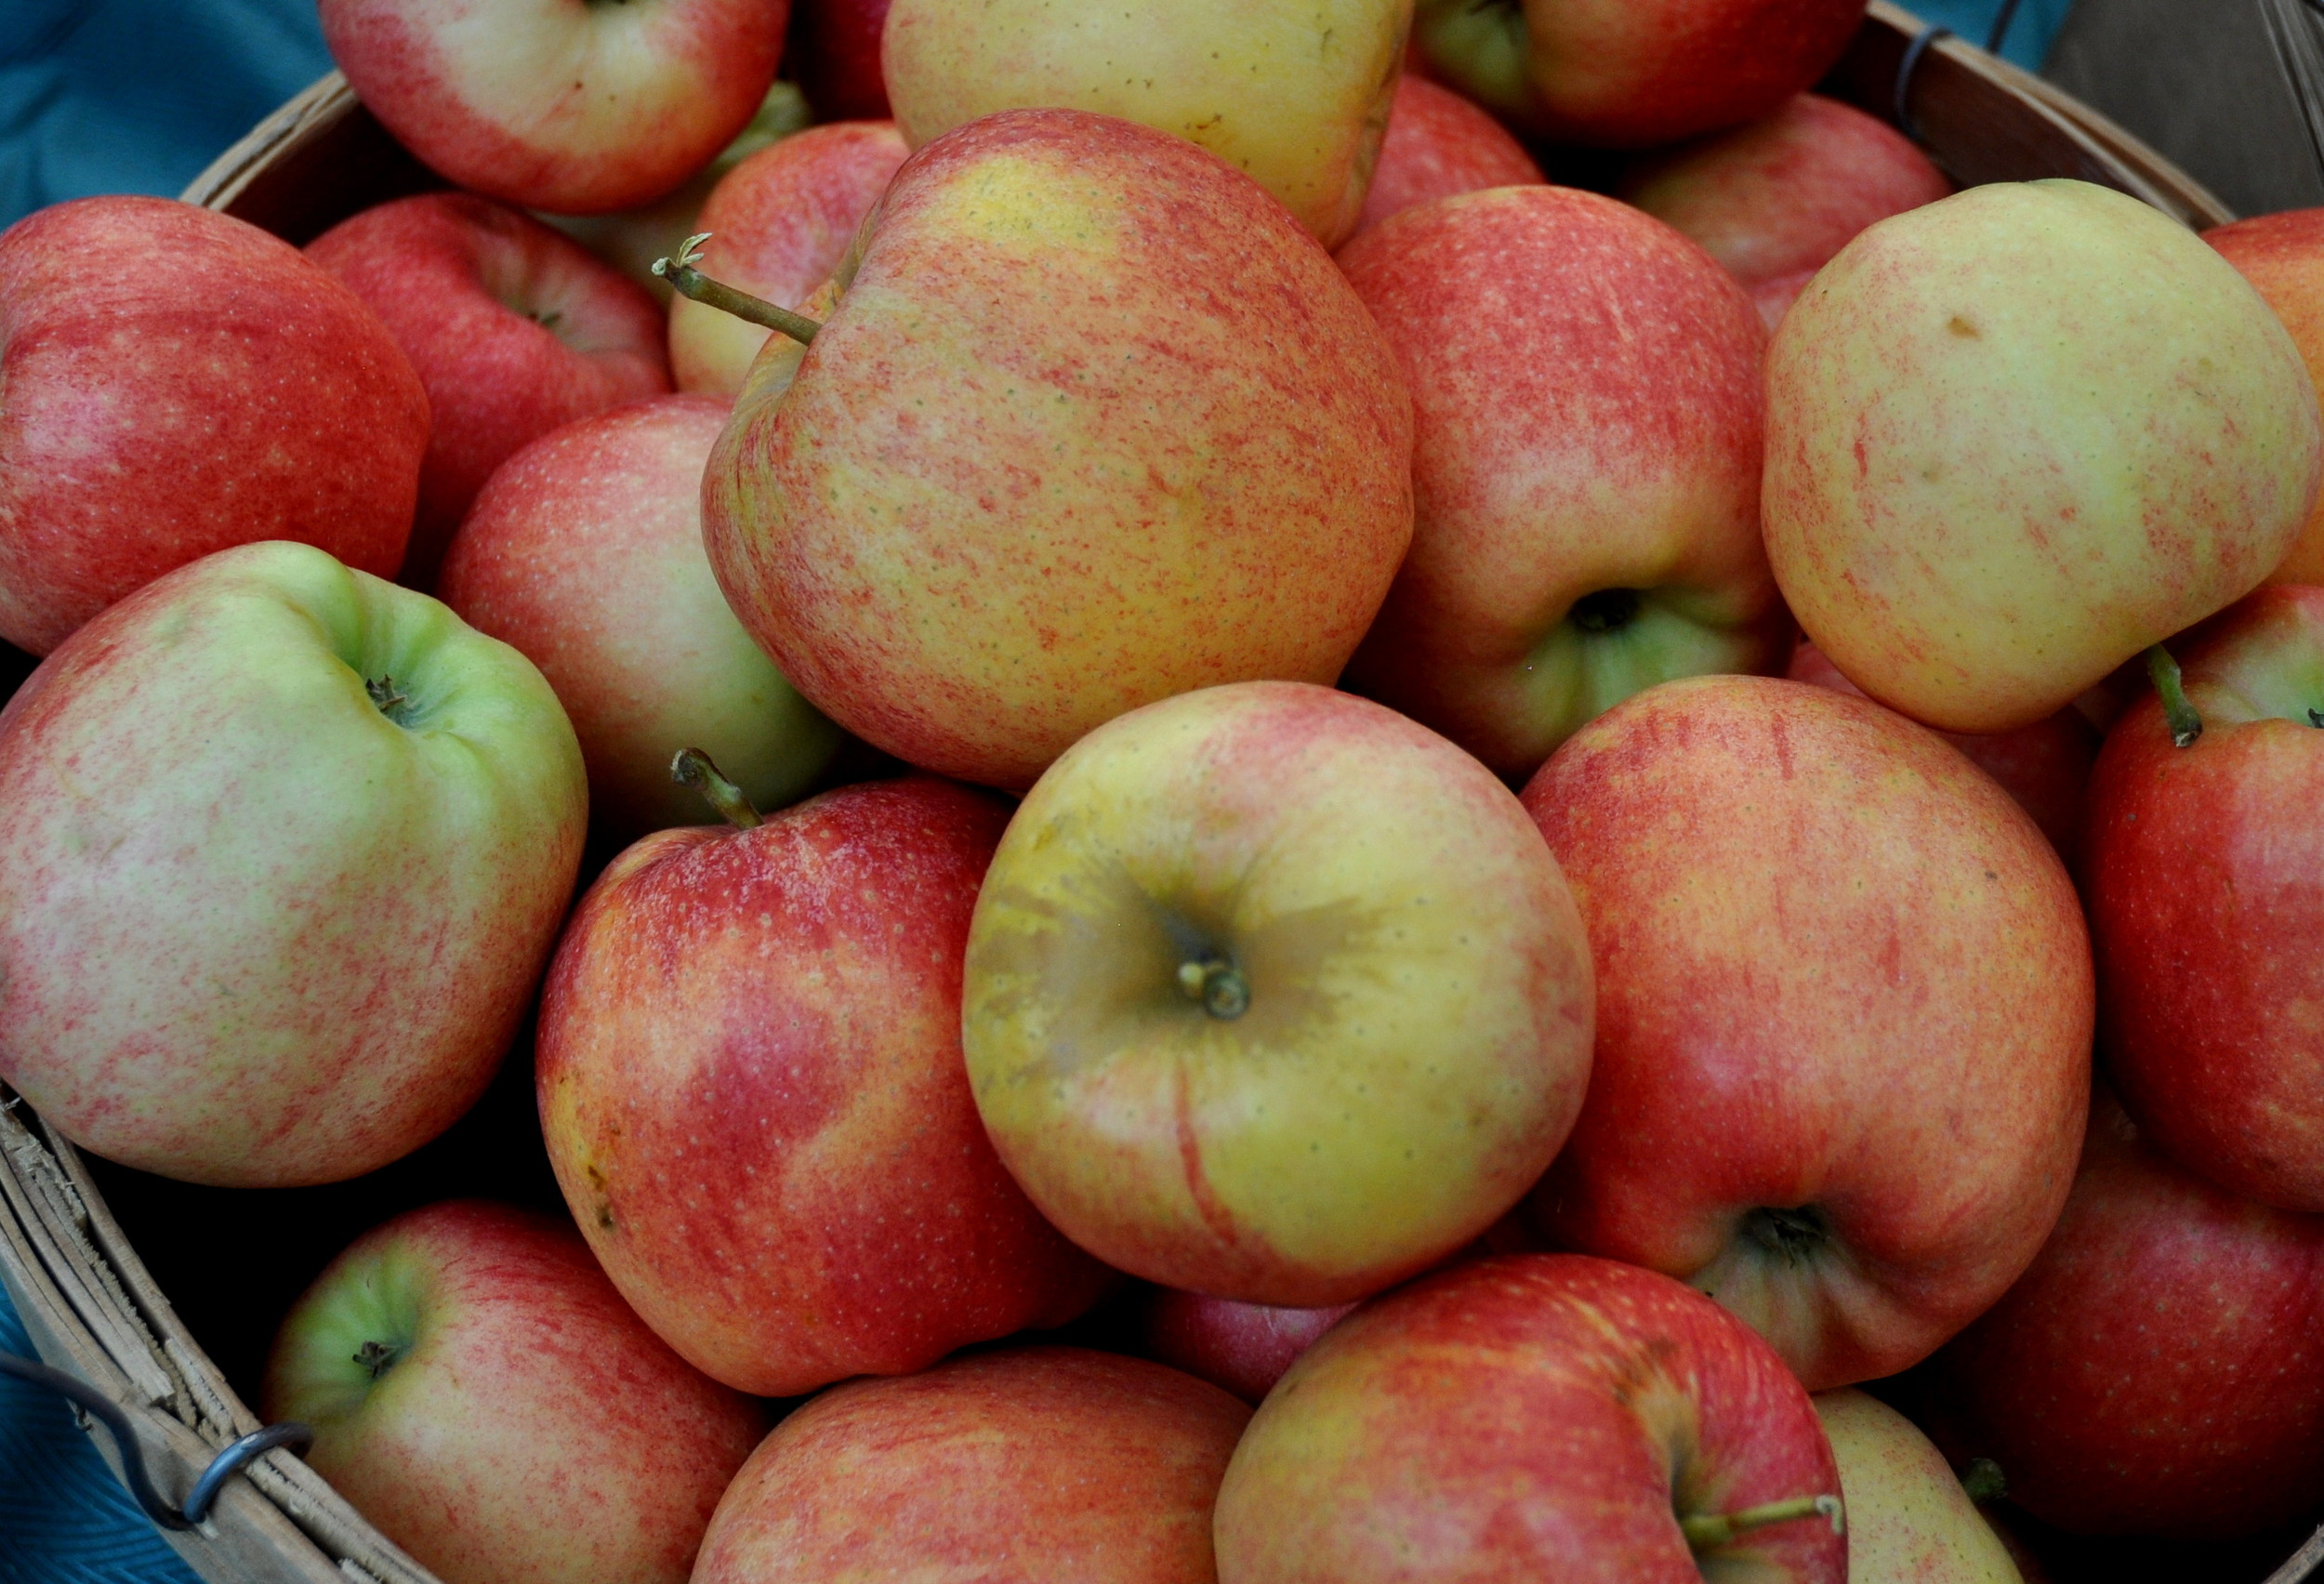 Gala apples from Martin Family Orchards at Wallingford Farmers Market. Copyright Zachary D. Lyons.